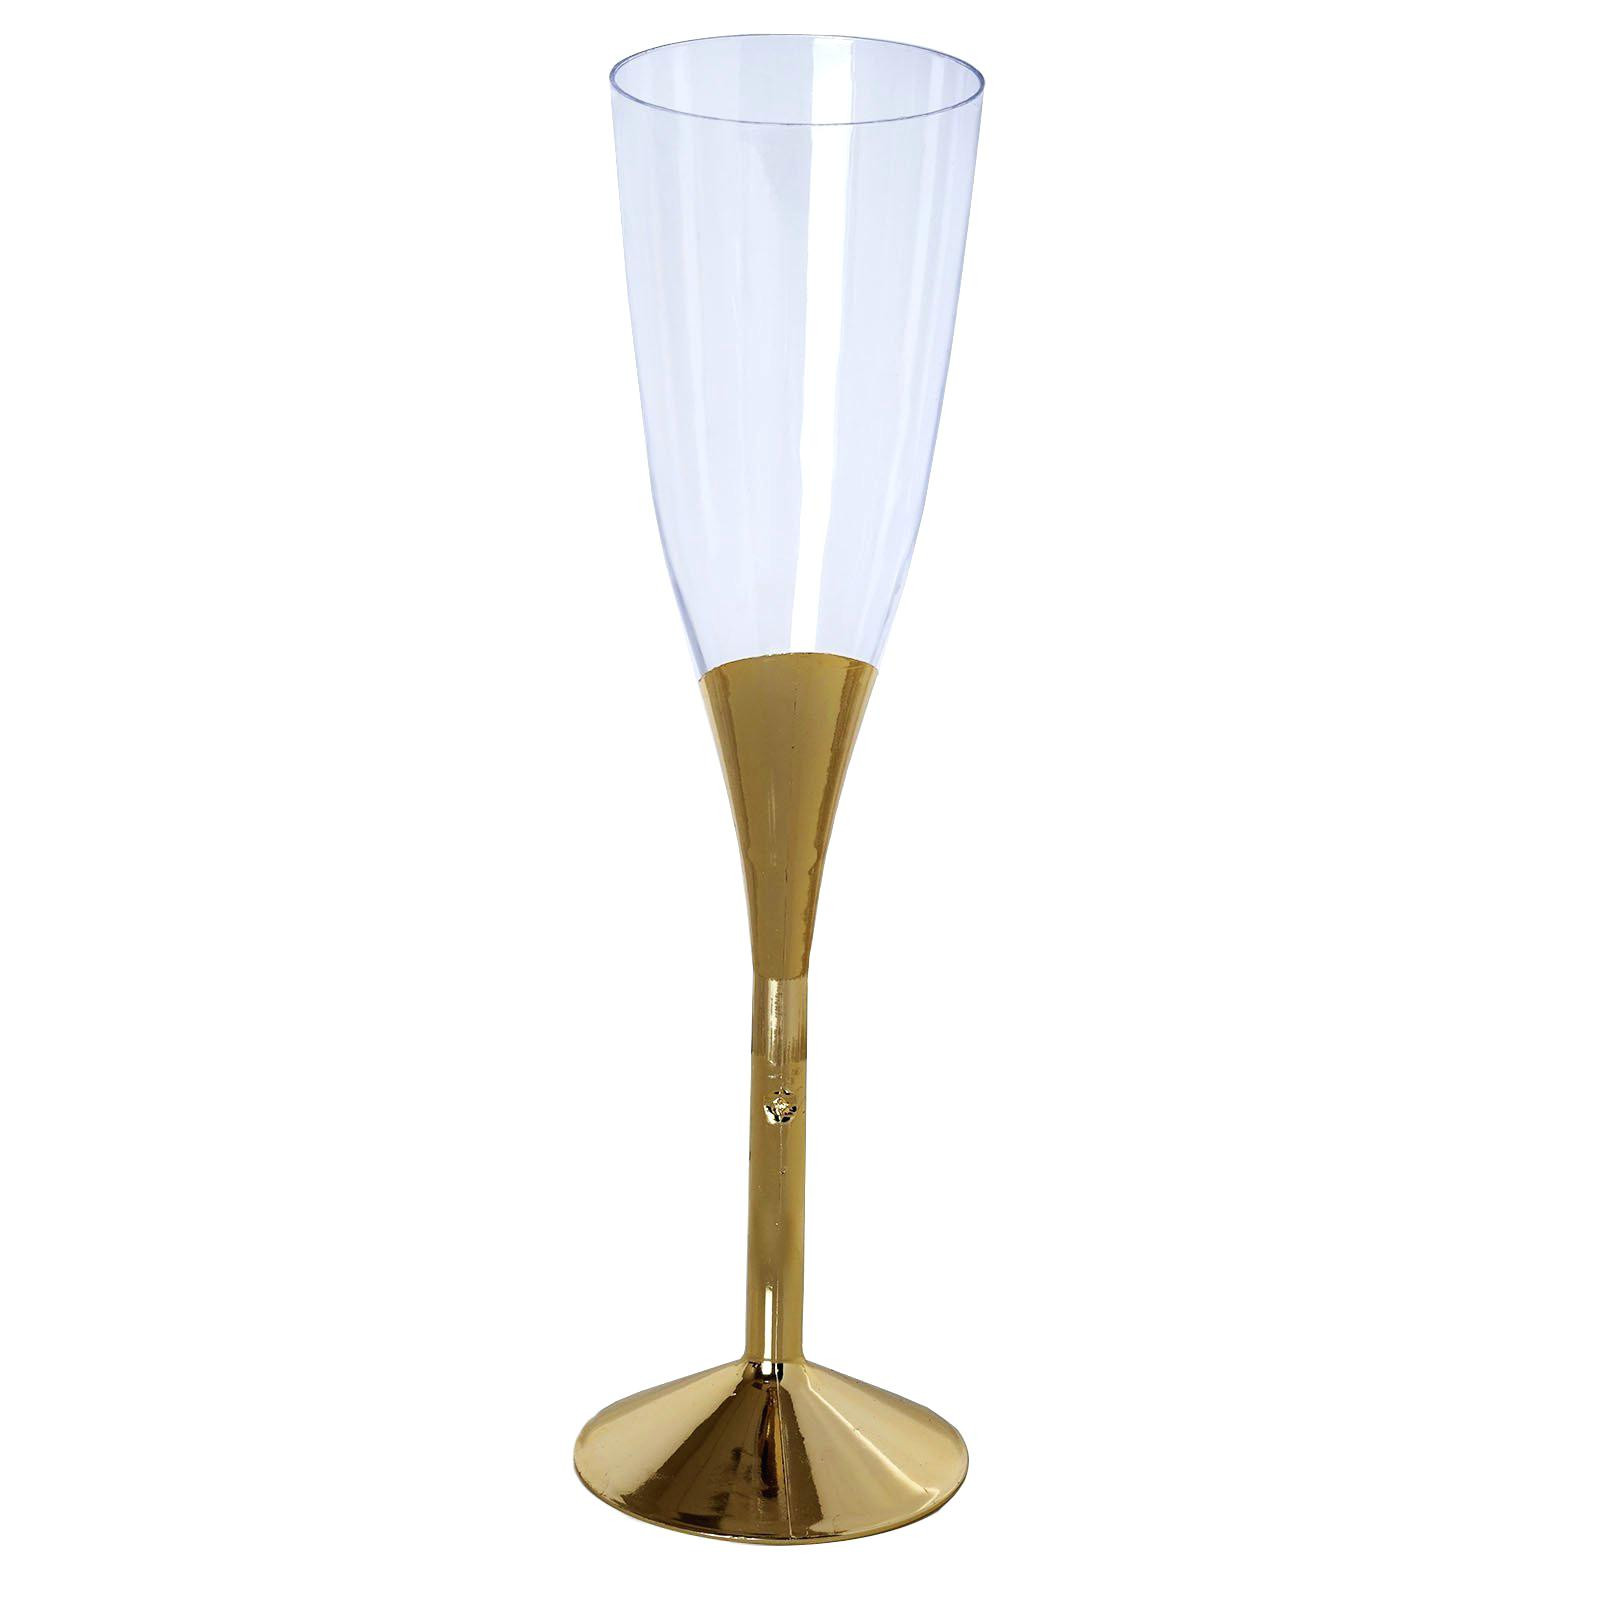 discount glass vases wholesale nz of square champagne flutes nz gossip girl cheap 32sixthave com for square champagne flutes oz nz mikasa cheap